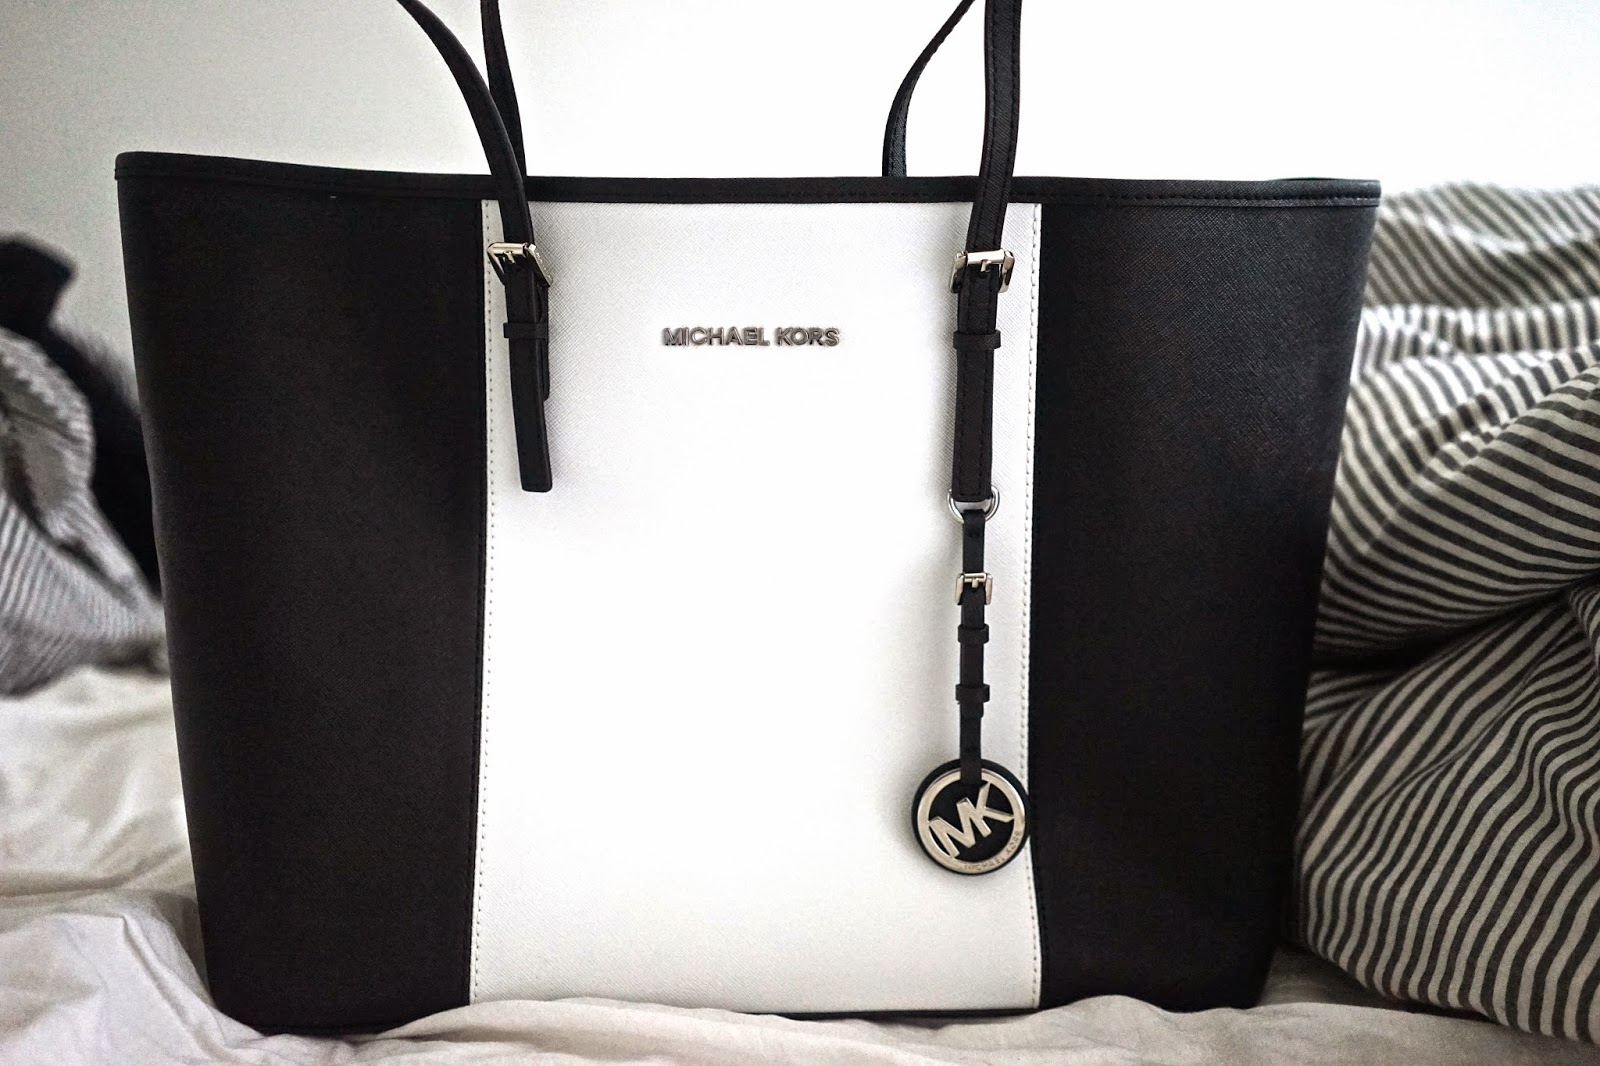 Emtalks  Michael Kors Handbag Giveaway Competition! eeb014e1e0574